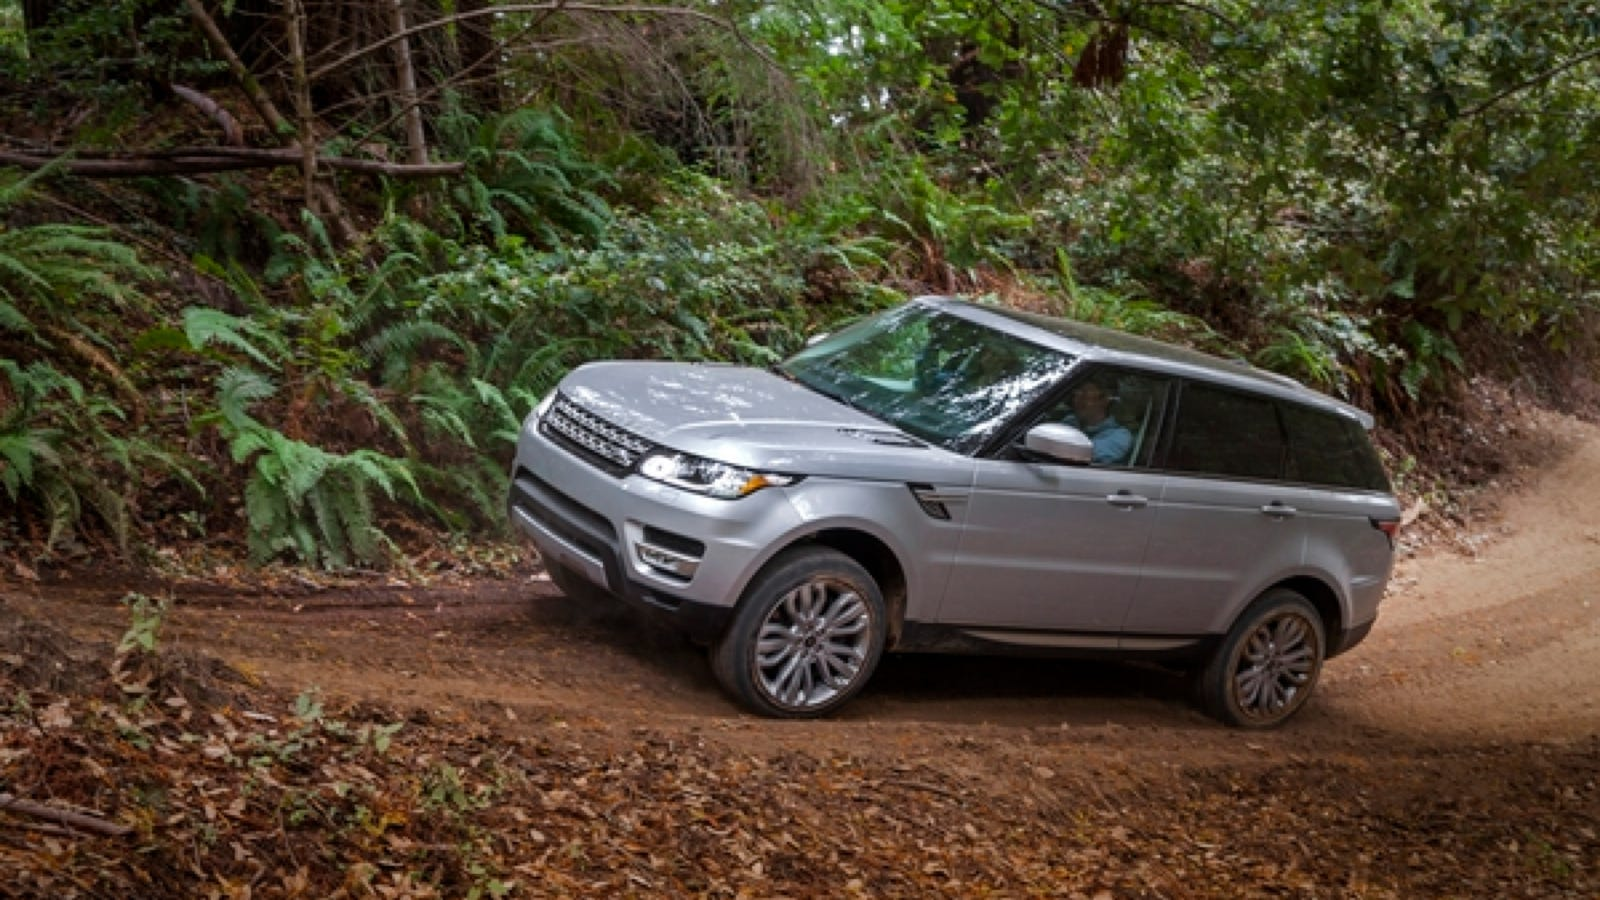 land rover 39 s 2014 range rover sport wins petersen 39 s 4 wheel off road magazine 4x4 of the year. Black Bedroom Furniture Sets. Home Design Ideas